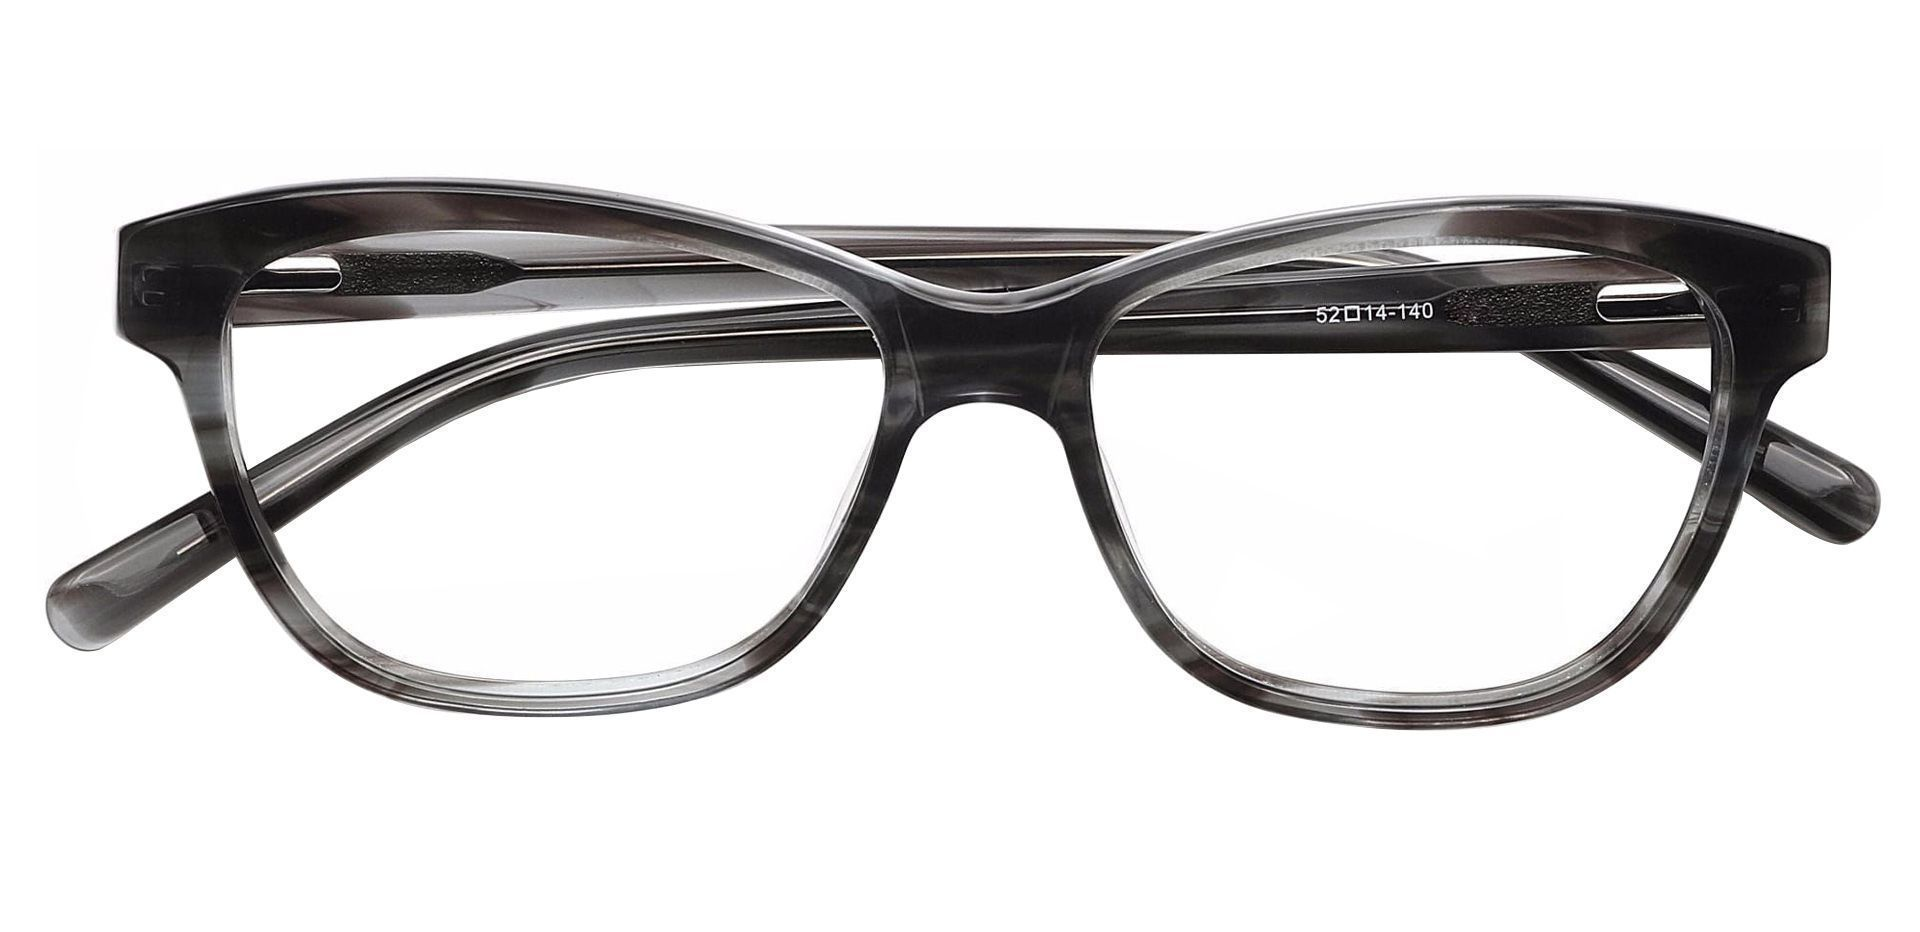 Verve Cat-eye Reading Glasses - Gray